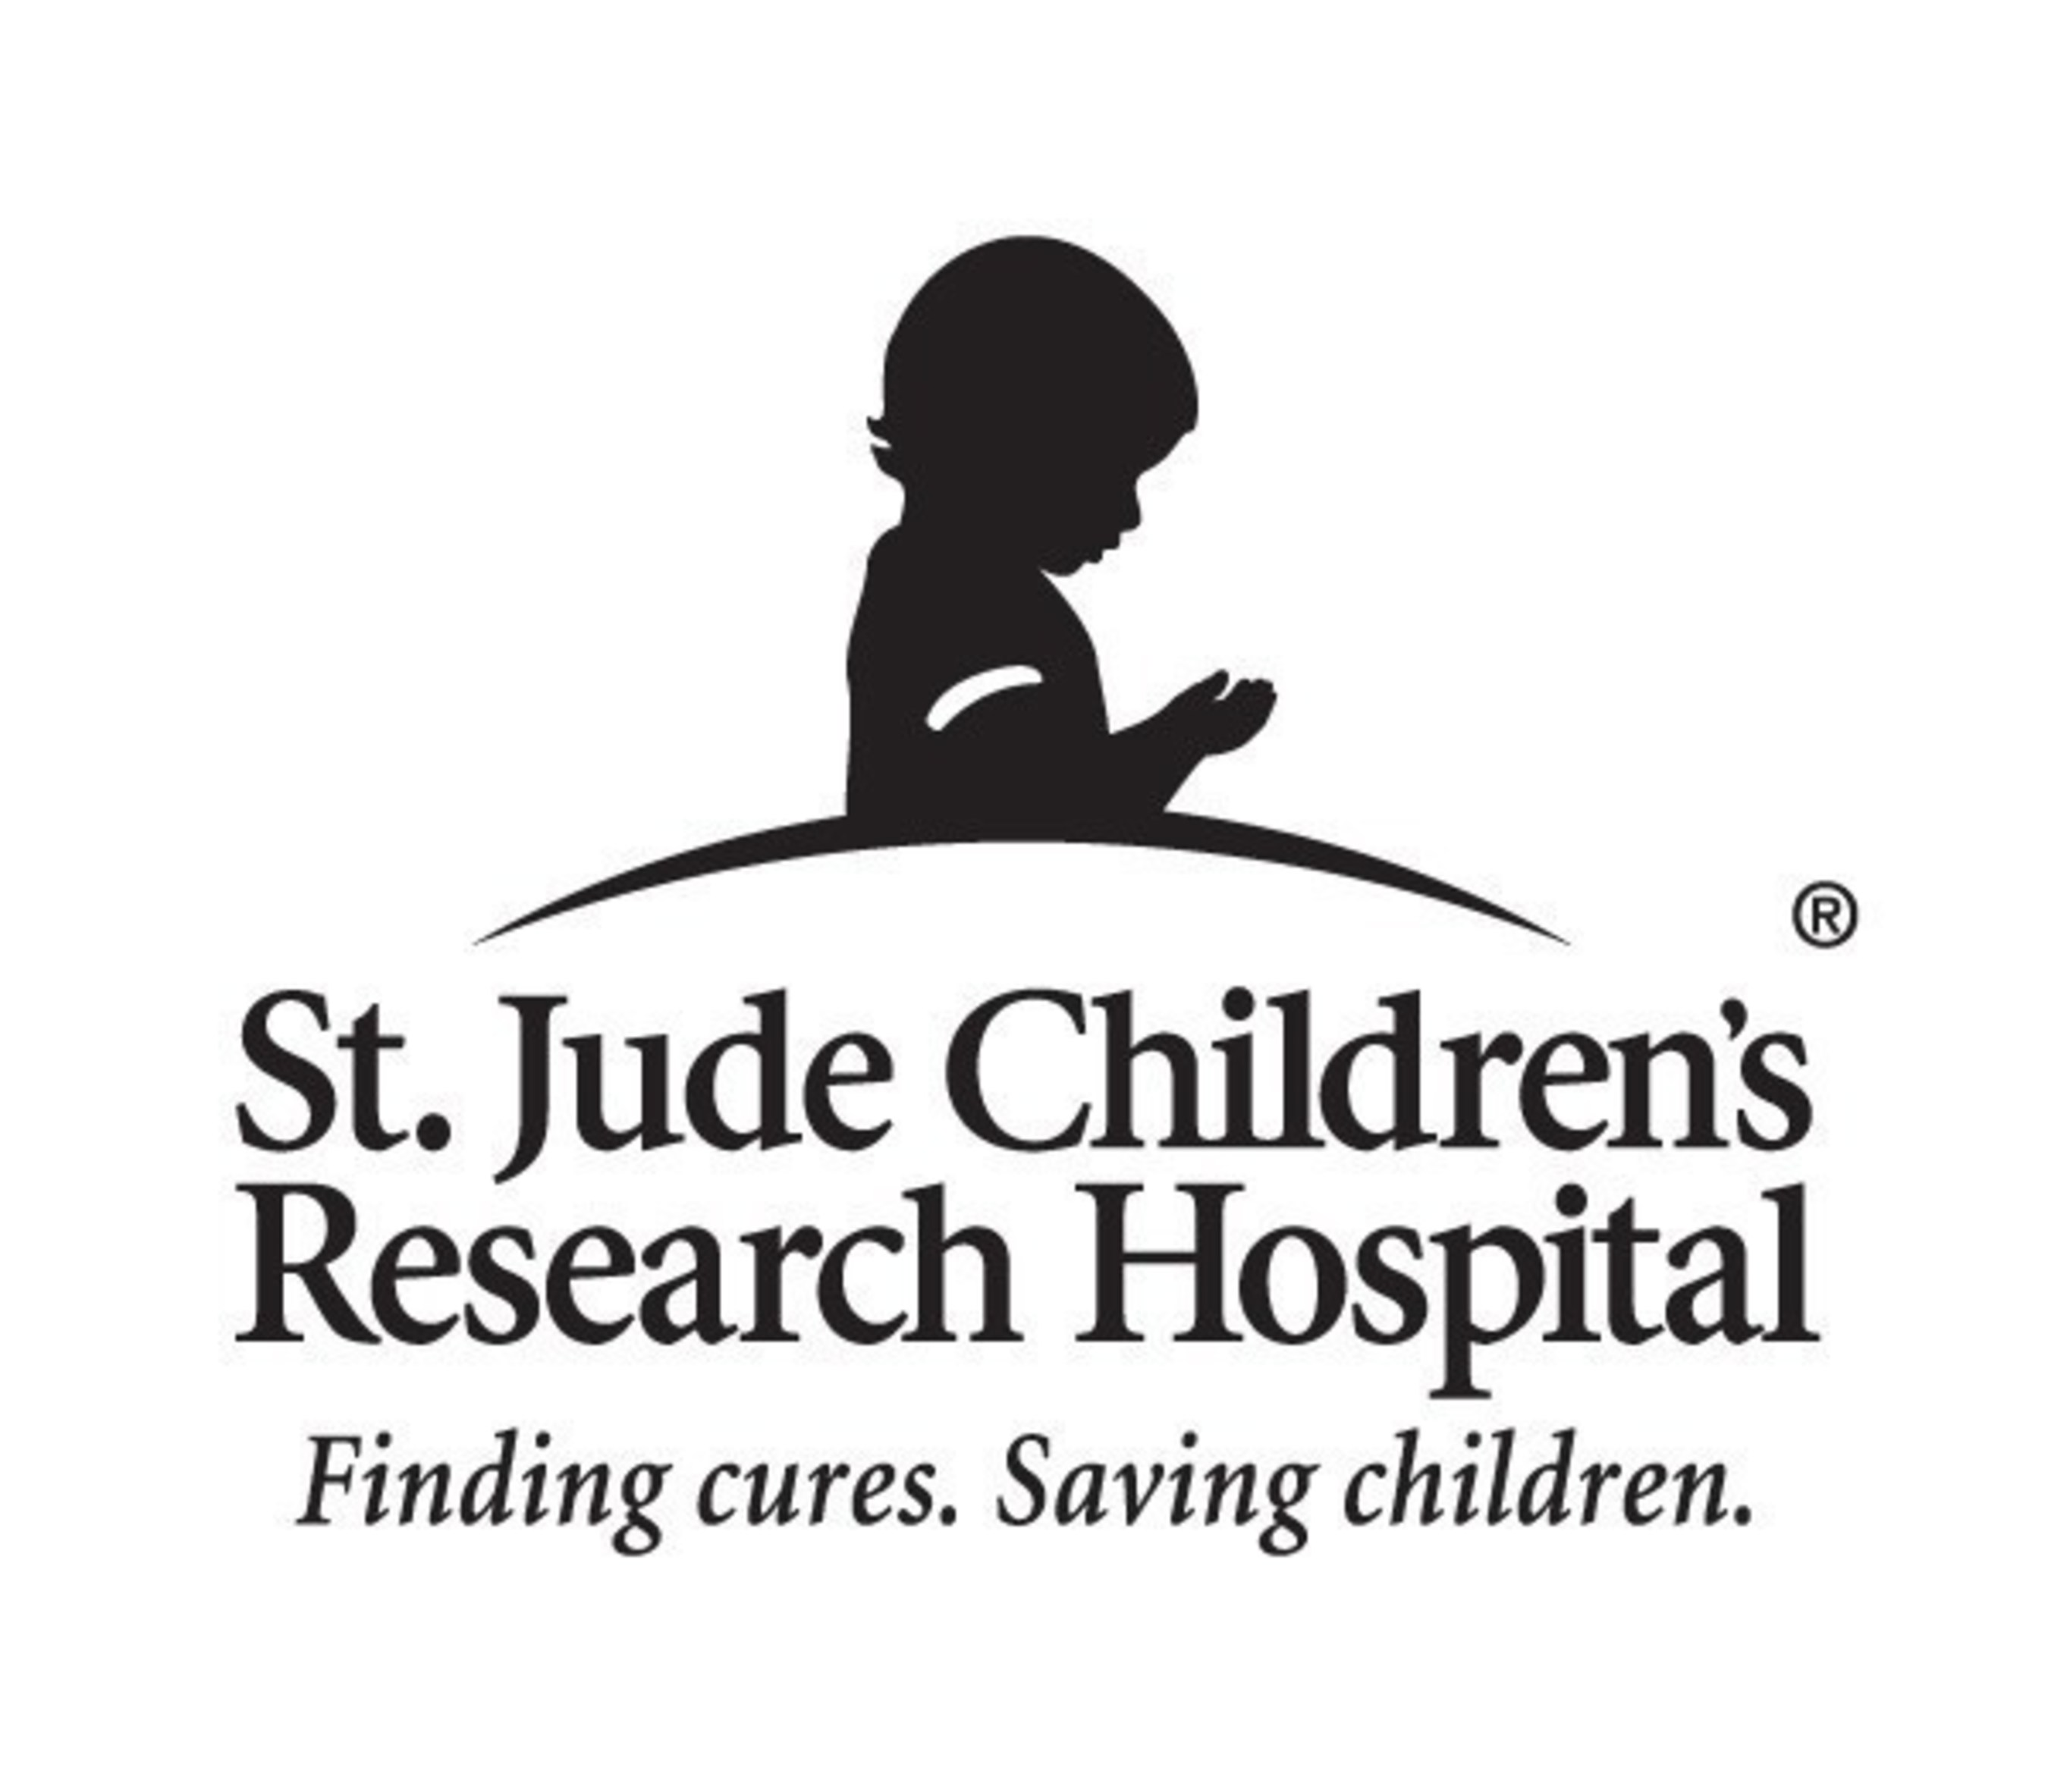 St. Jude Children's Research Hospital(R)